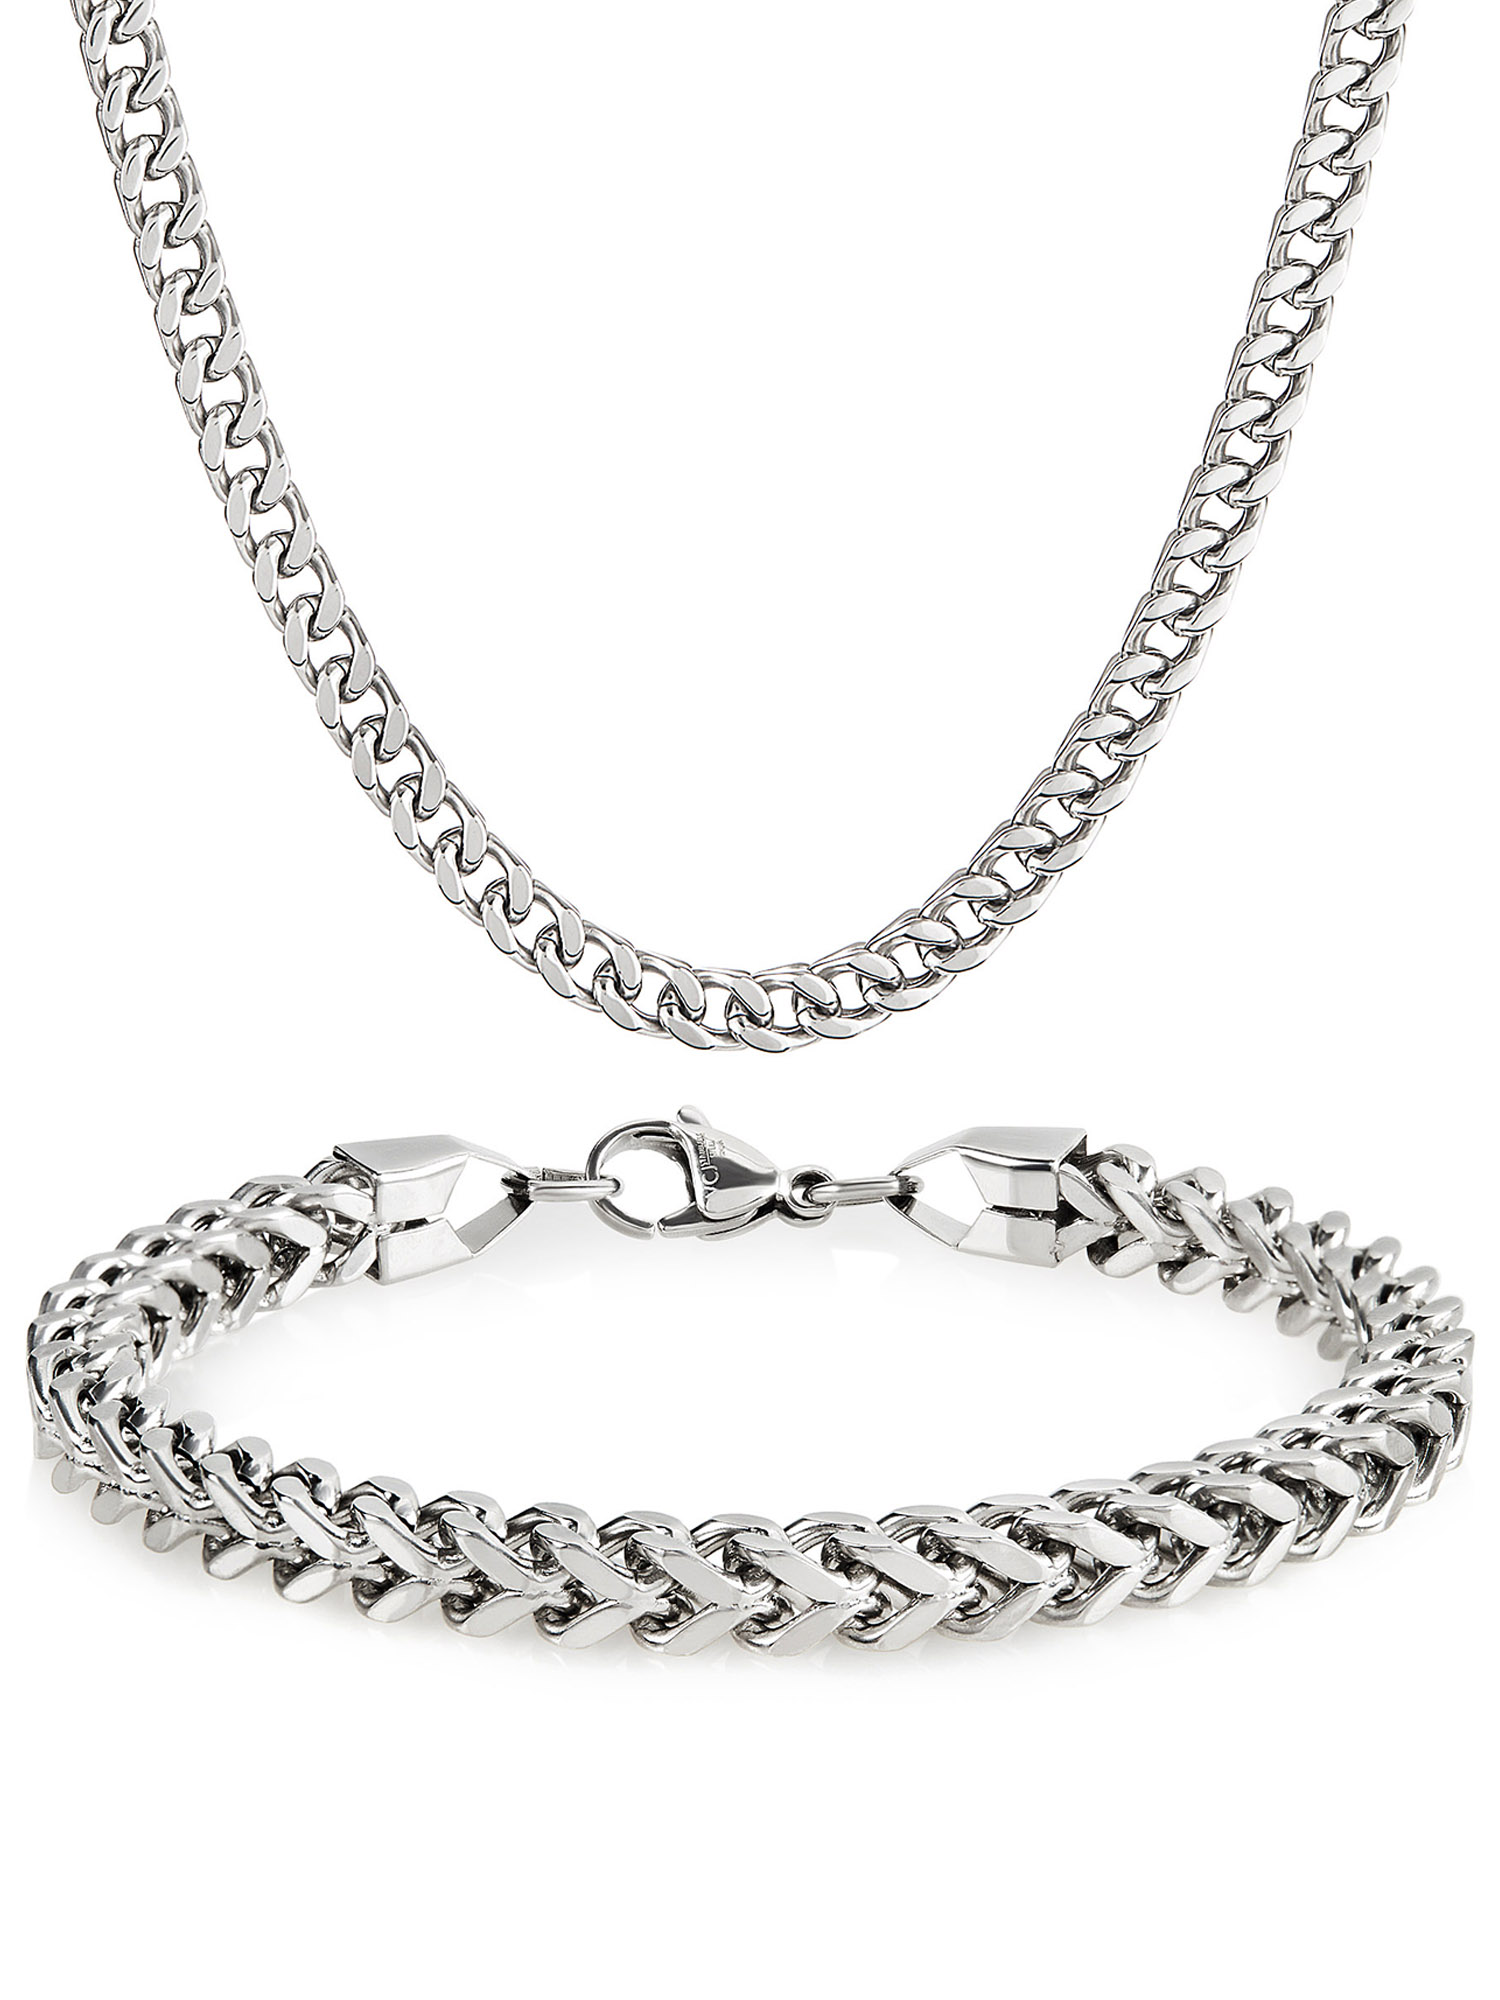 """Stainless Steel Franco Chain Necklace (24"""") and Bracelet (8.25"""") Set"""